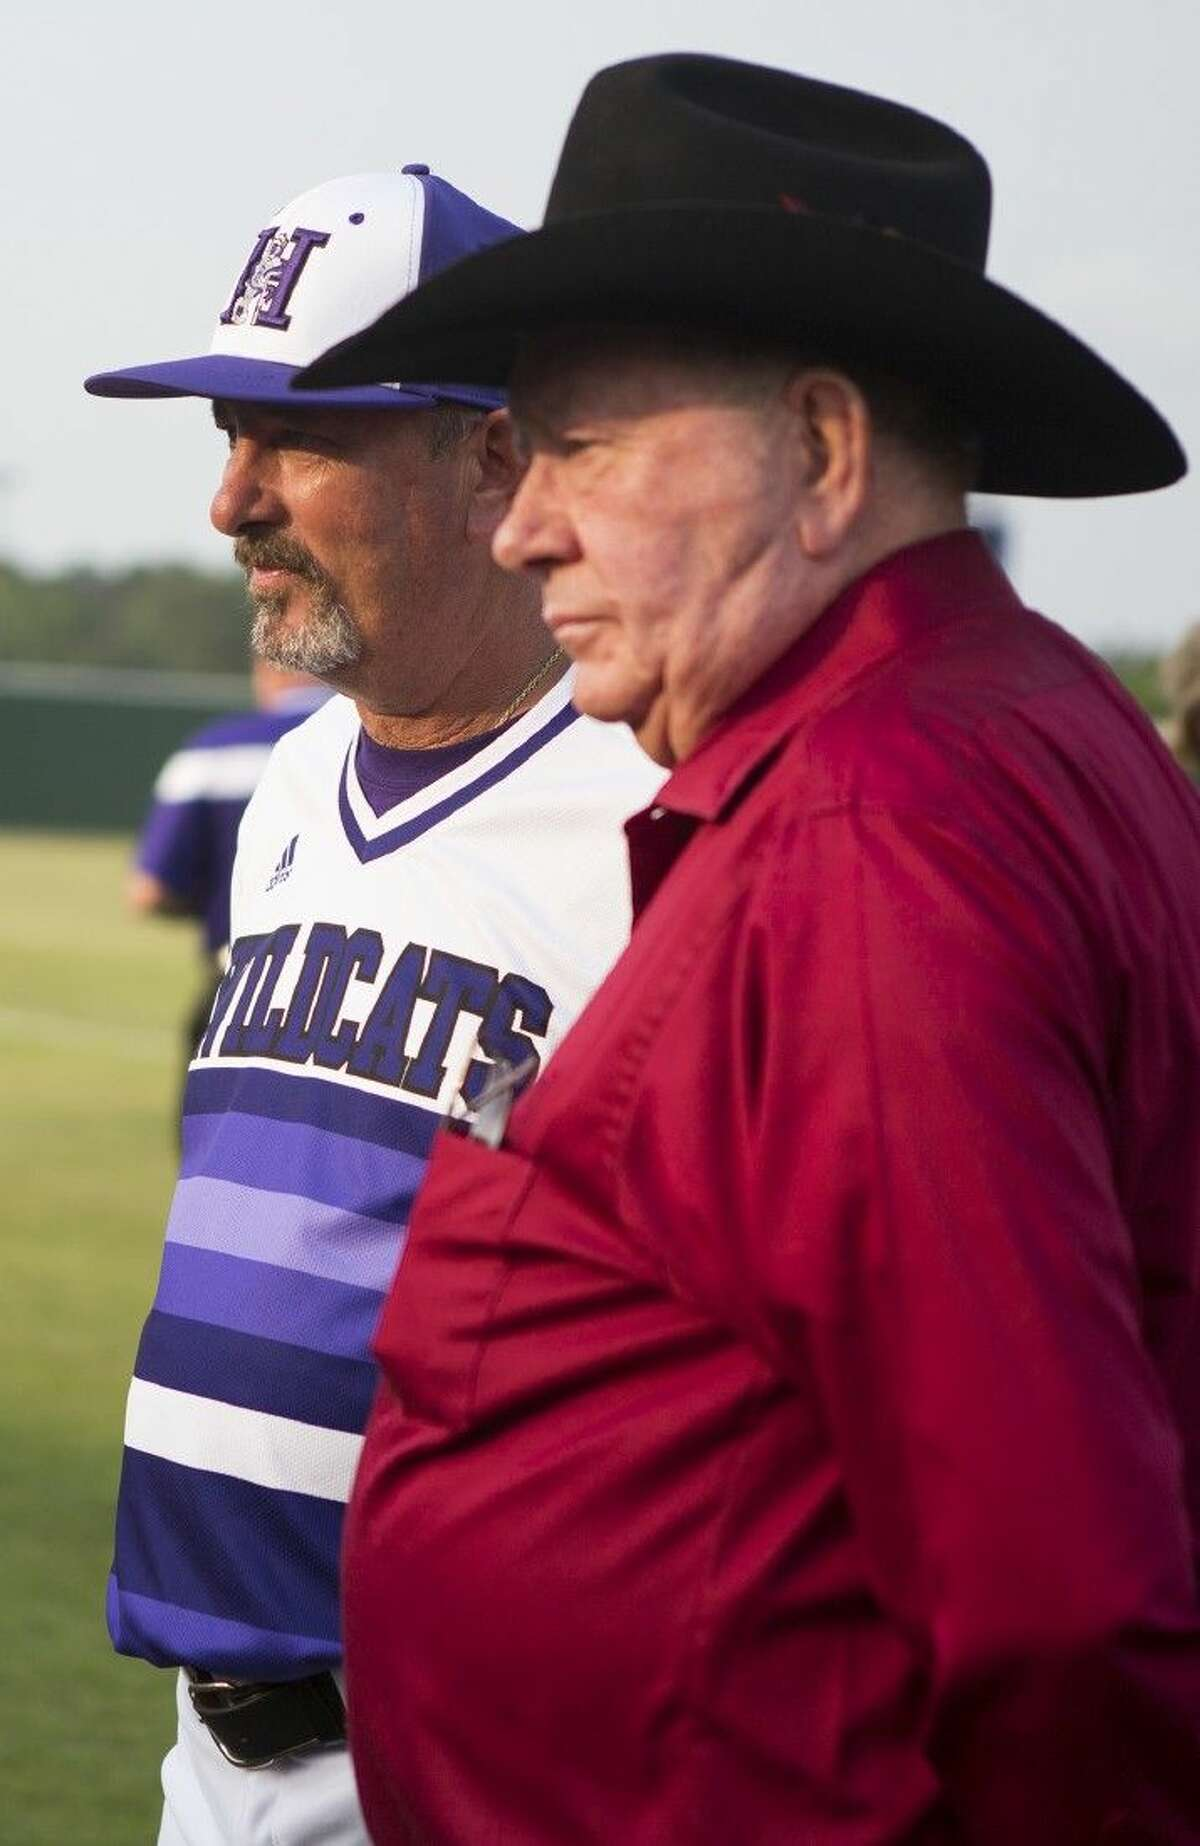 Wildcats head coach David Sitton waits with his father, John, to be honored before Humble's matchup against Barbers Hill on April 24, 2015, at the newly named David Sitton Field at Humble High School.